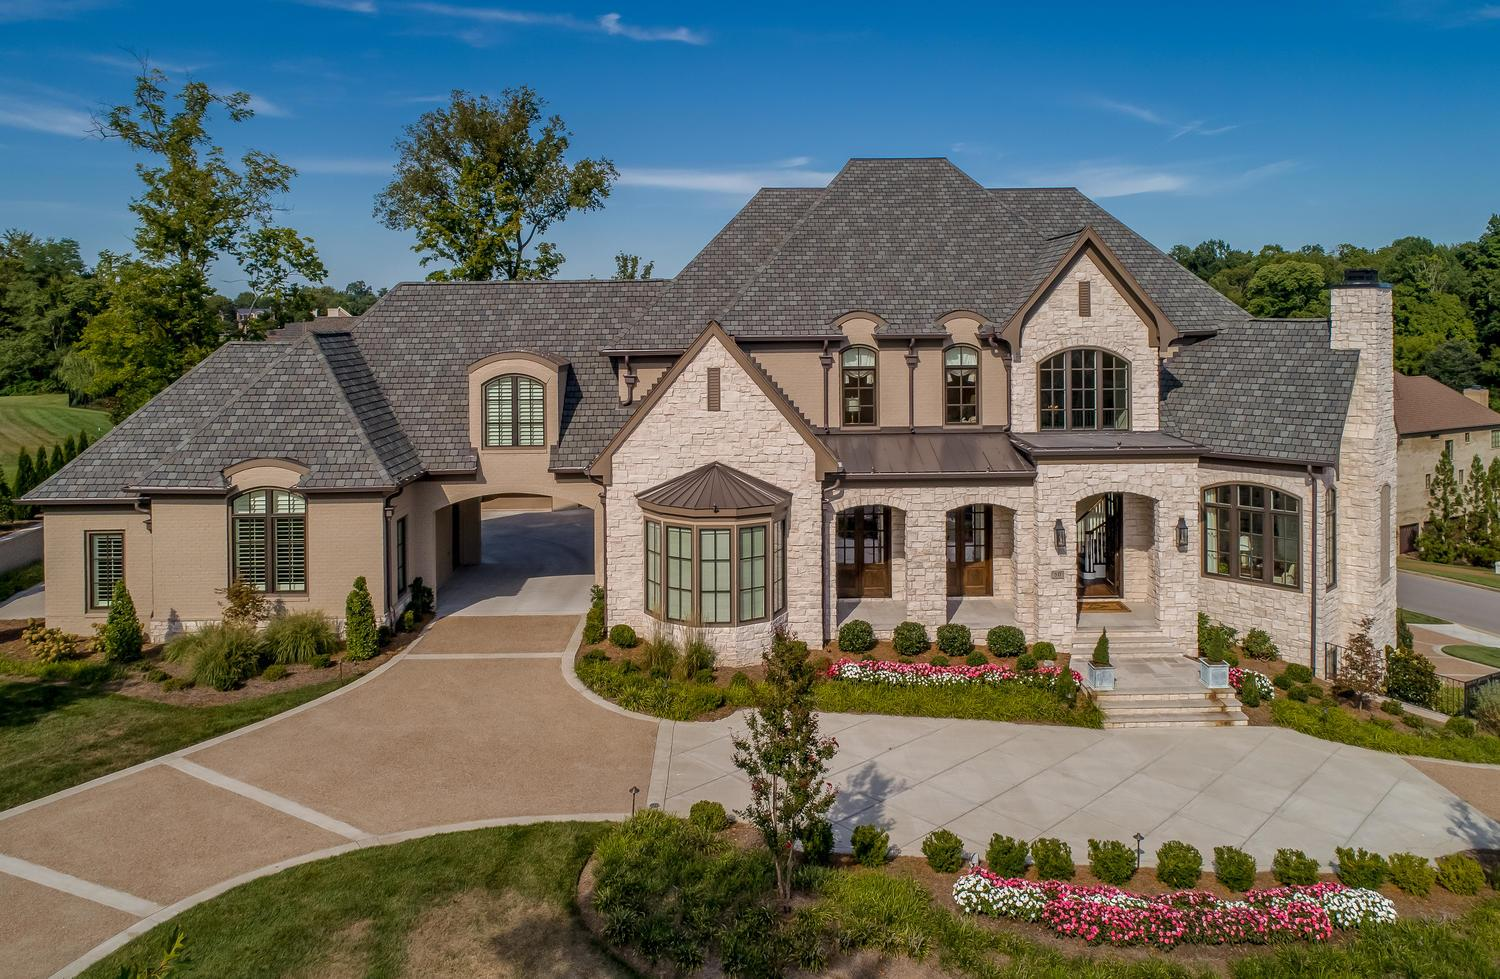 50 Governors Way, Brentwood, TN 37027 - Brentwood, TN real estate listing